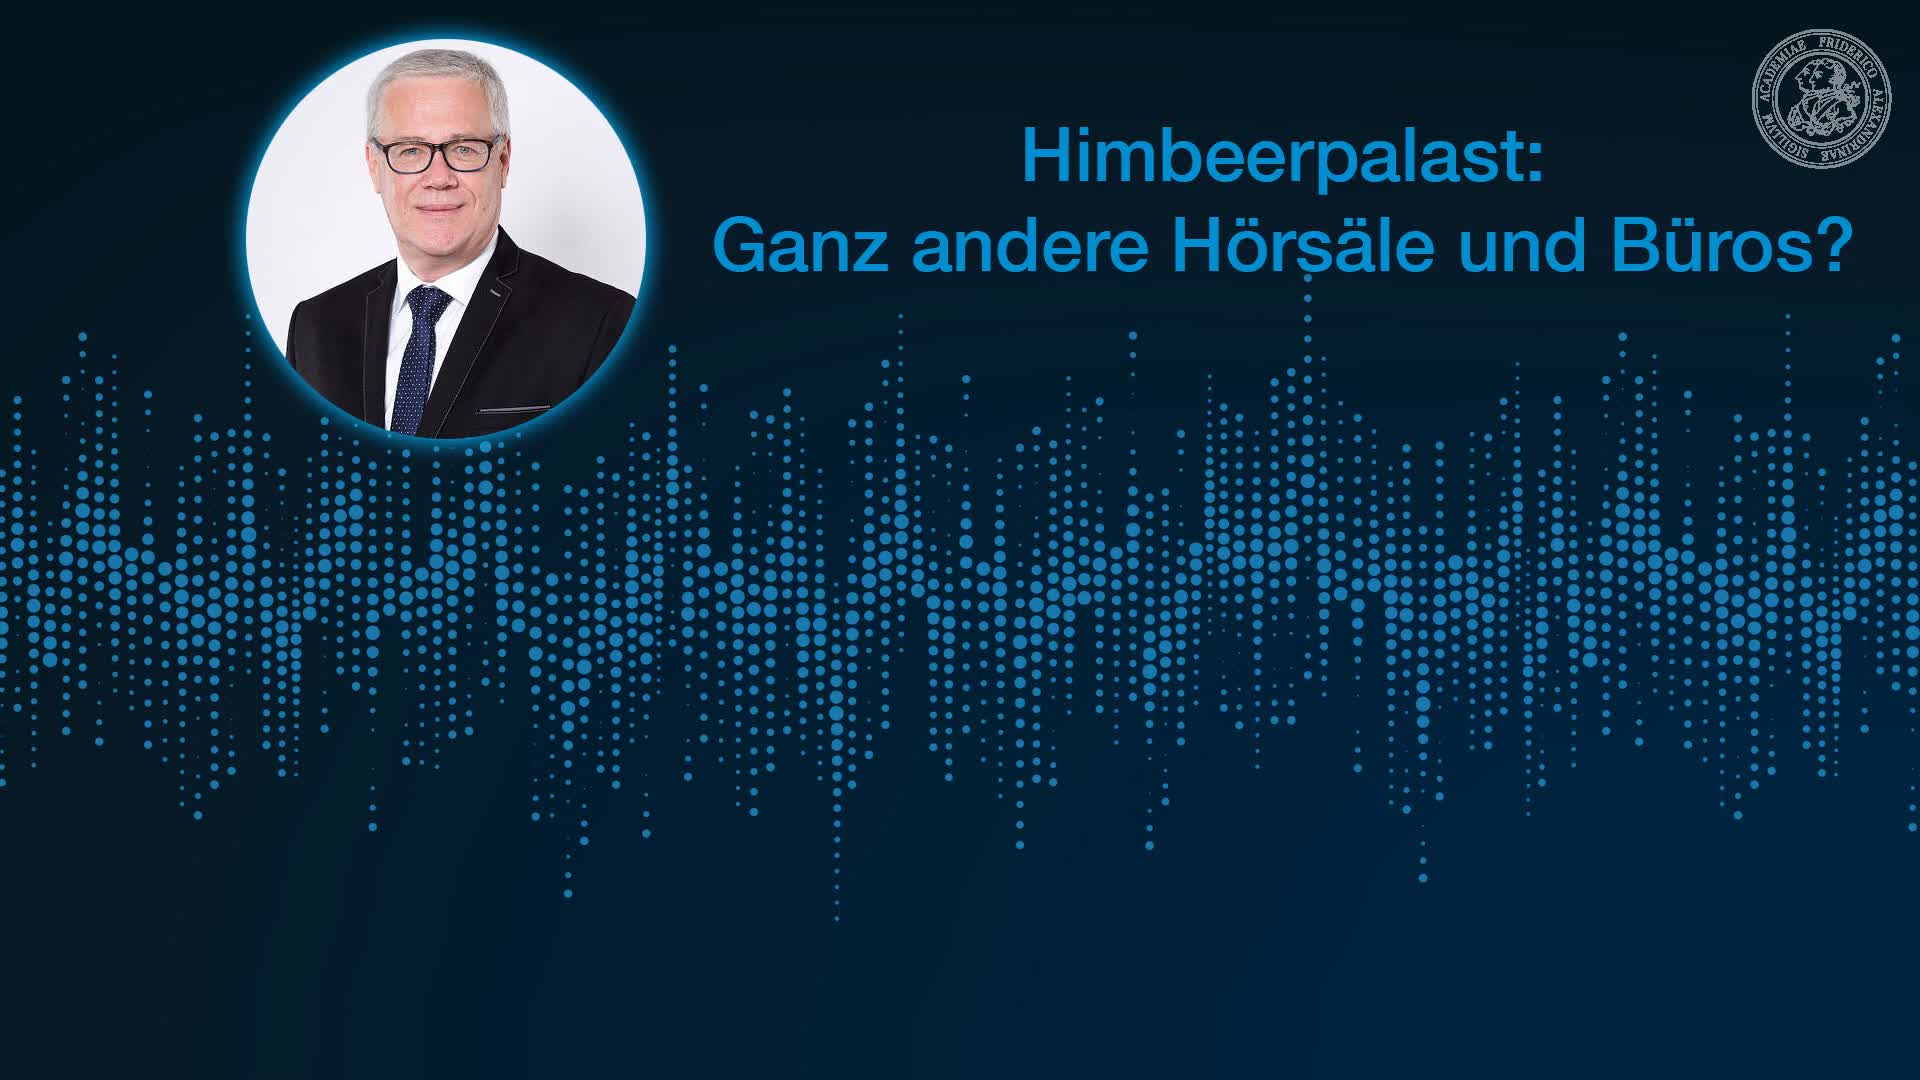 Himbeerpalast: Ganz andere Hörsäle und Büros? preview image